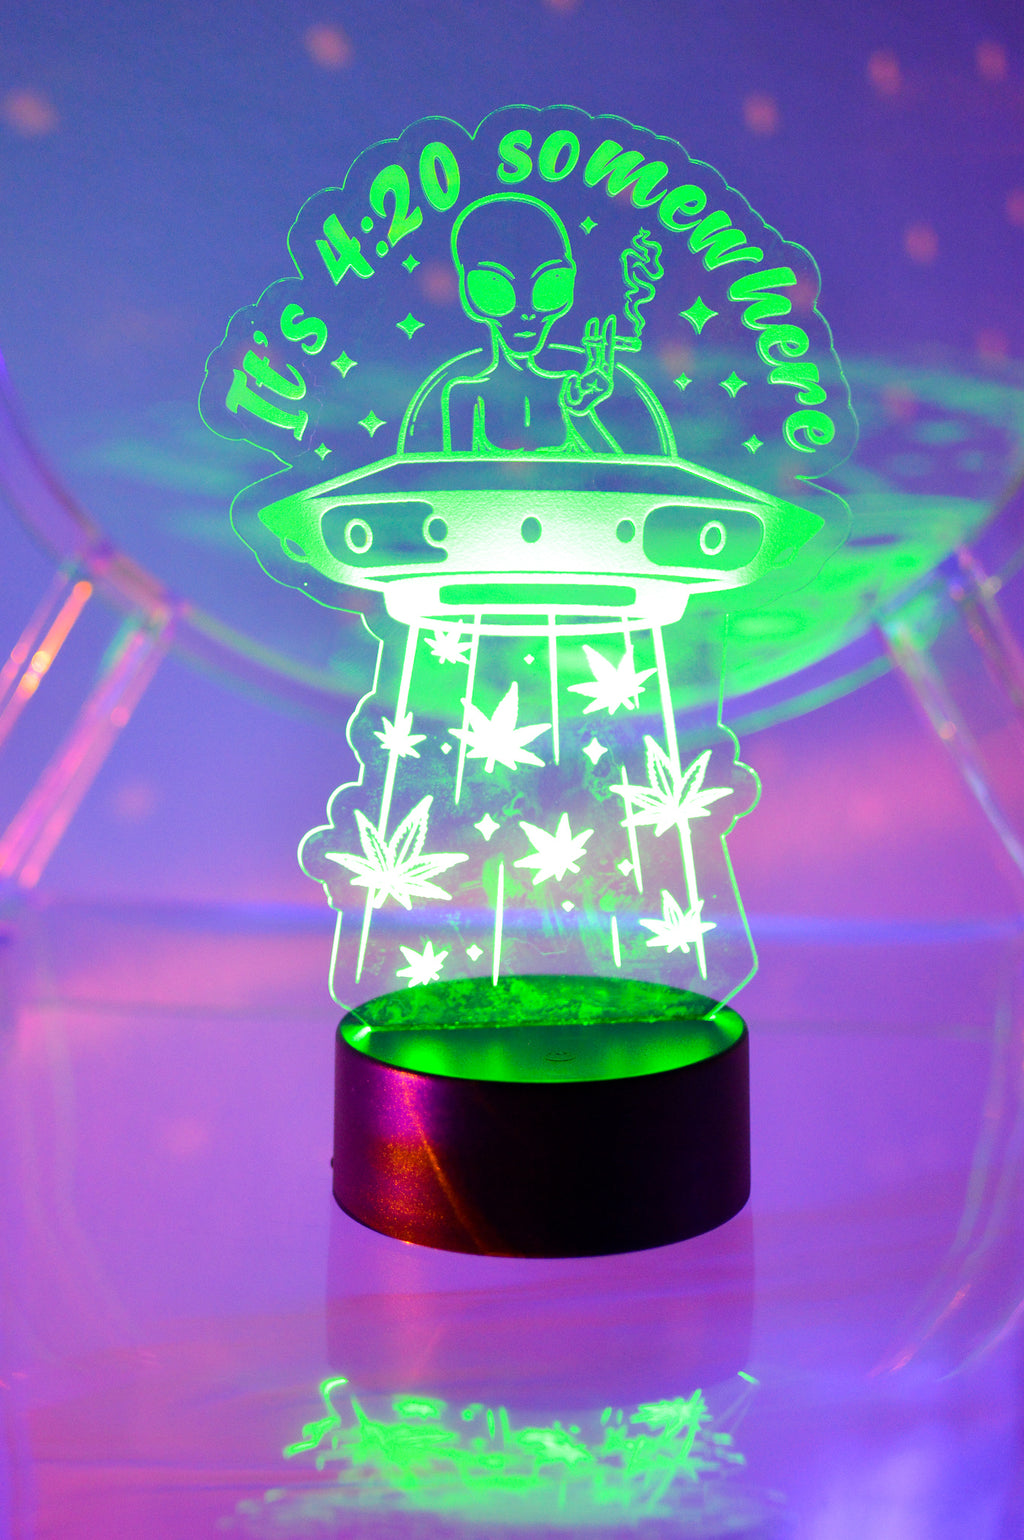 It's 4:20 LED Lamp